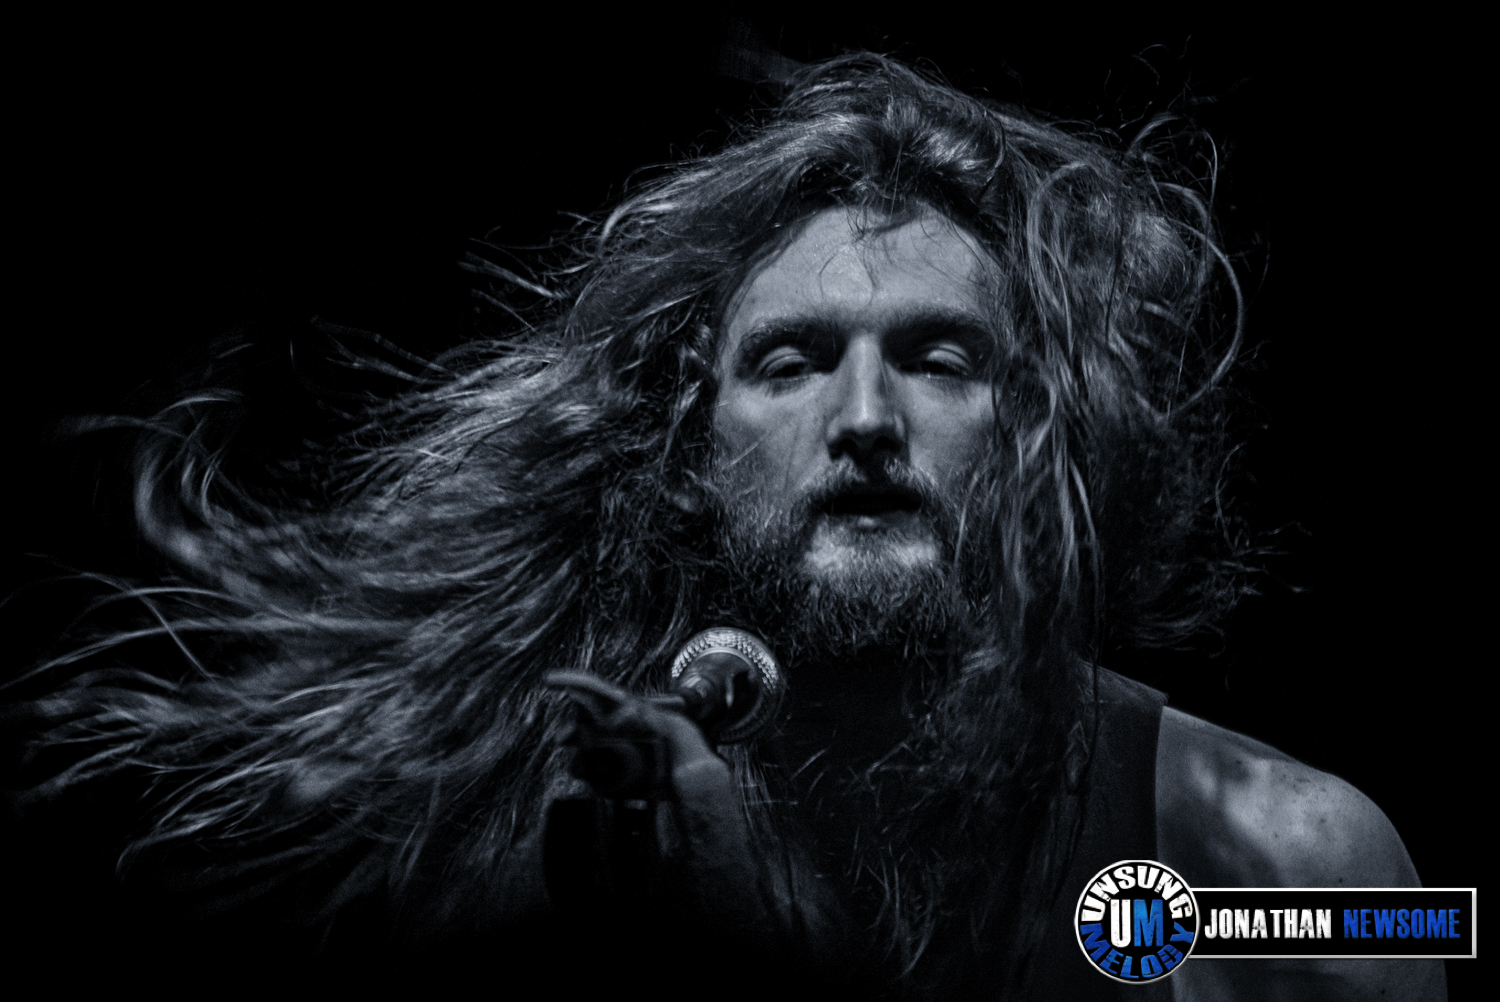 PHOTOS: Sundy Best at the East KY Expo Center in Pikeville, KY